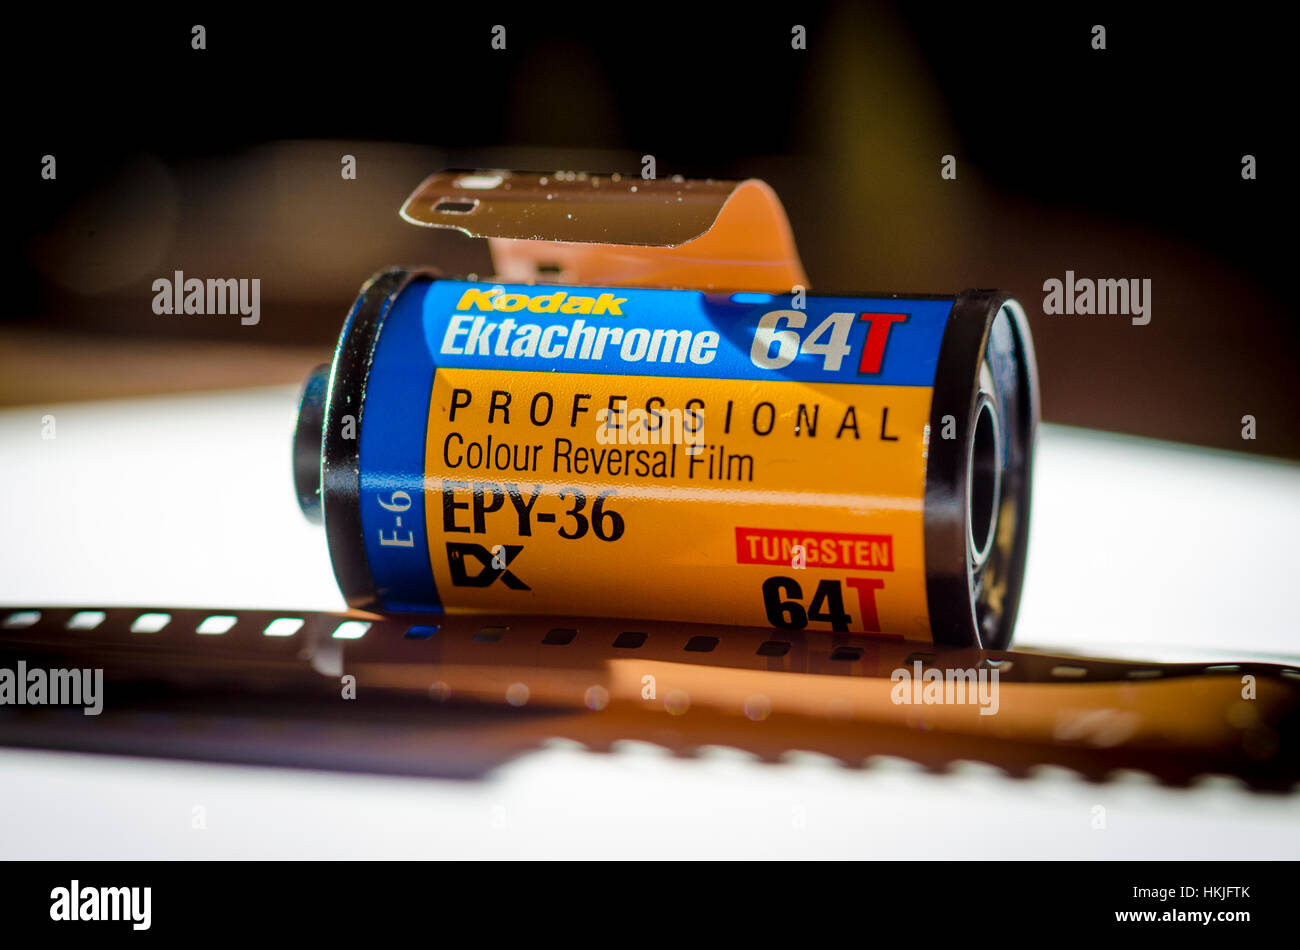 Kodak Ektachrome 35mm Transparency Film - Stock Image